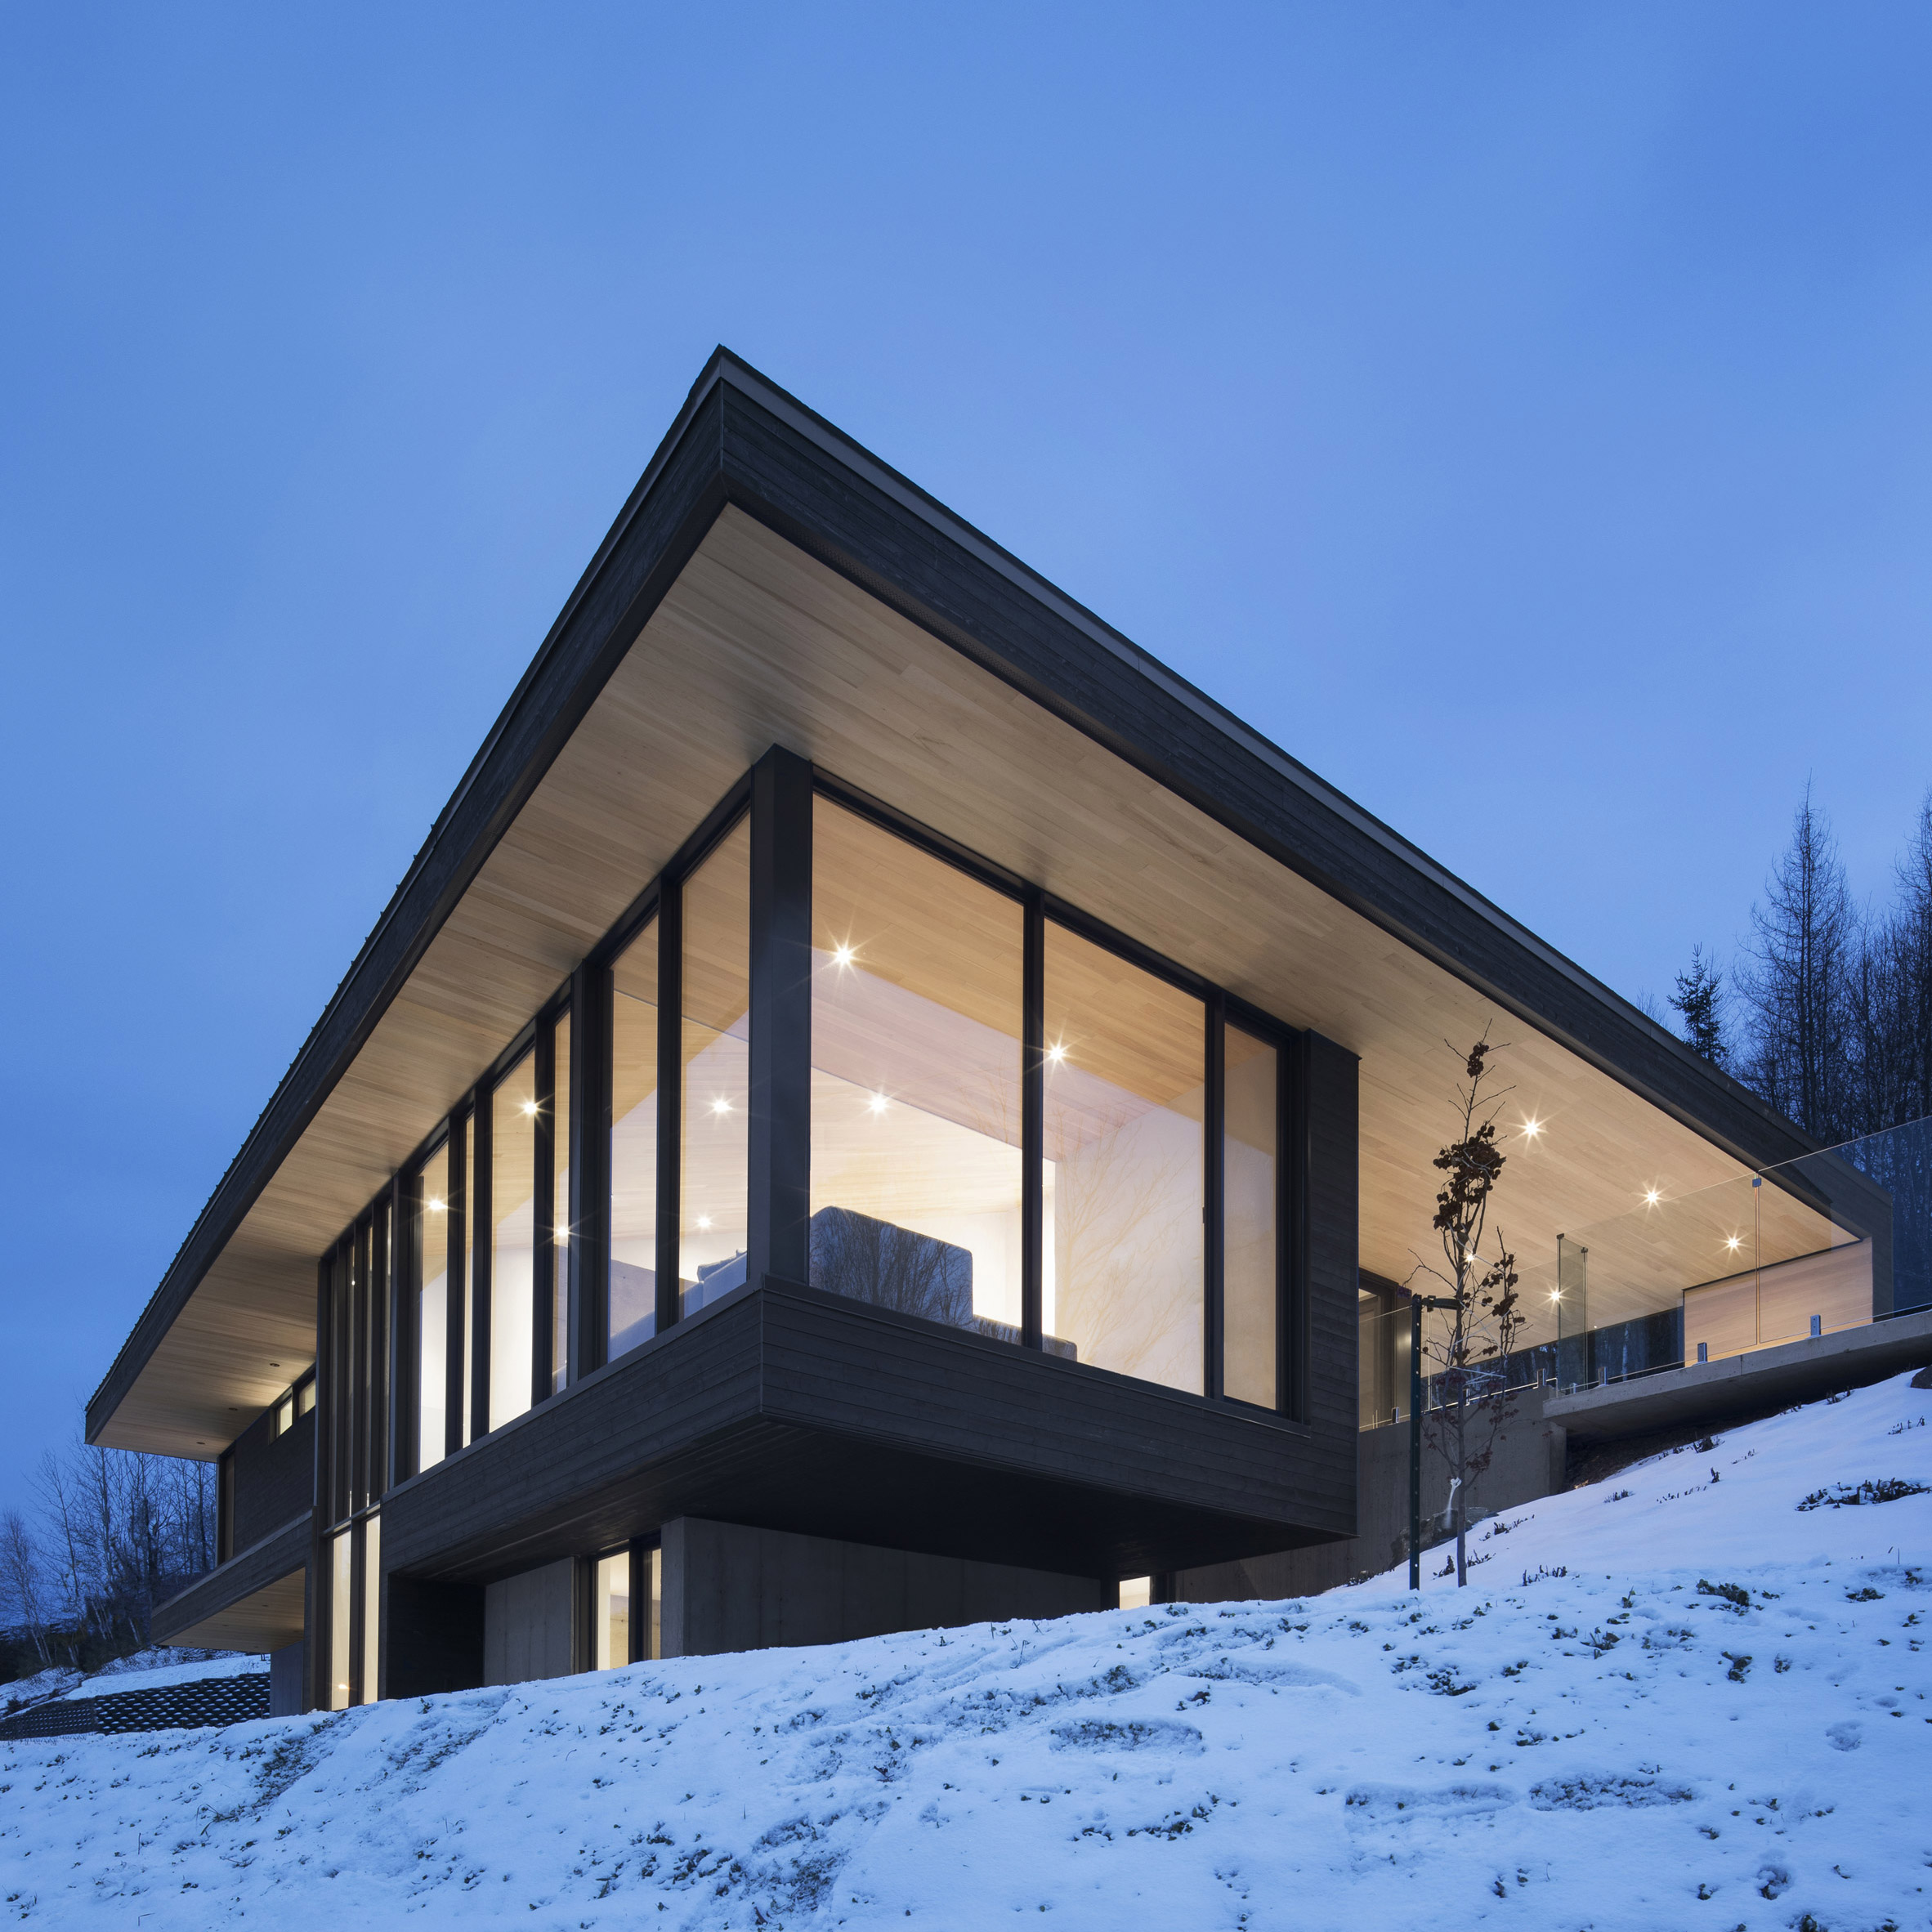 Bourgeois/Lechasseur nestles Quebec home with metal staircase into snowy hillside